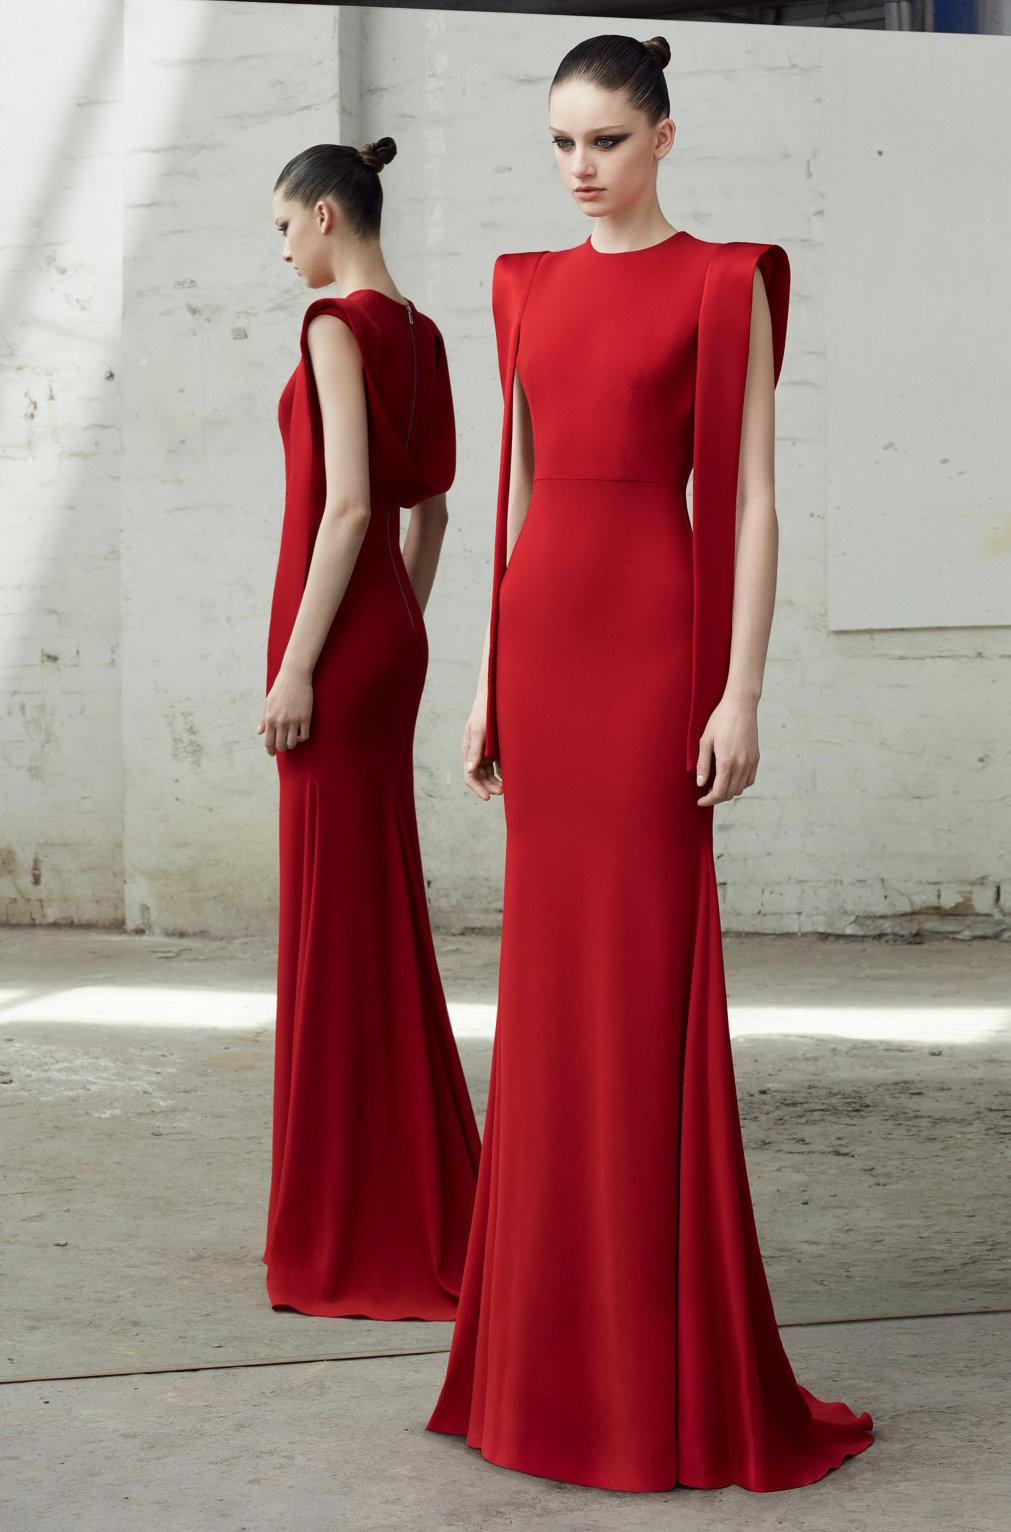 19c9a2423d2 ALEX PERRY. Pre Fall 2018 Alex Perry Alex Red Satin Draped Gown